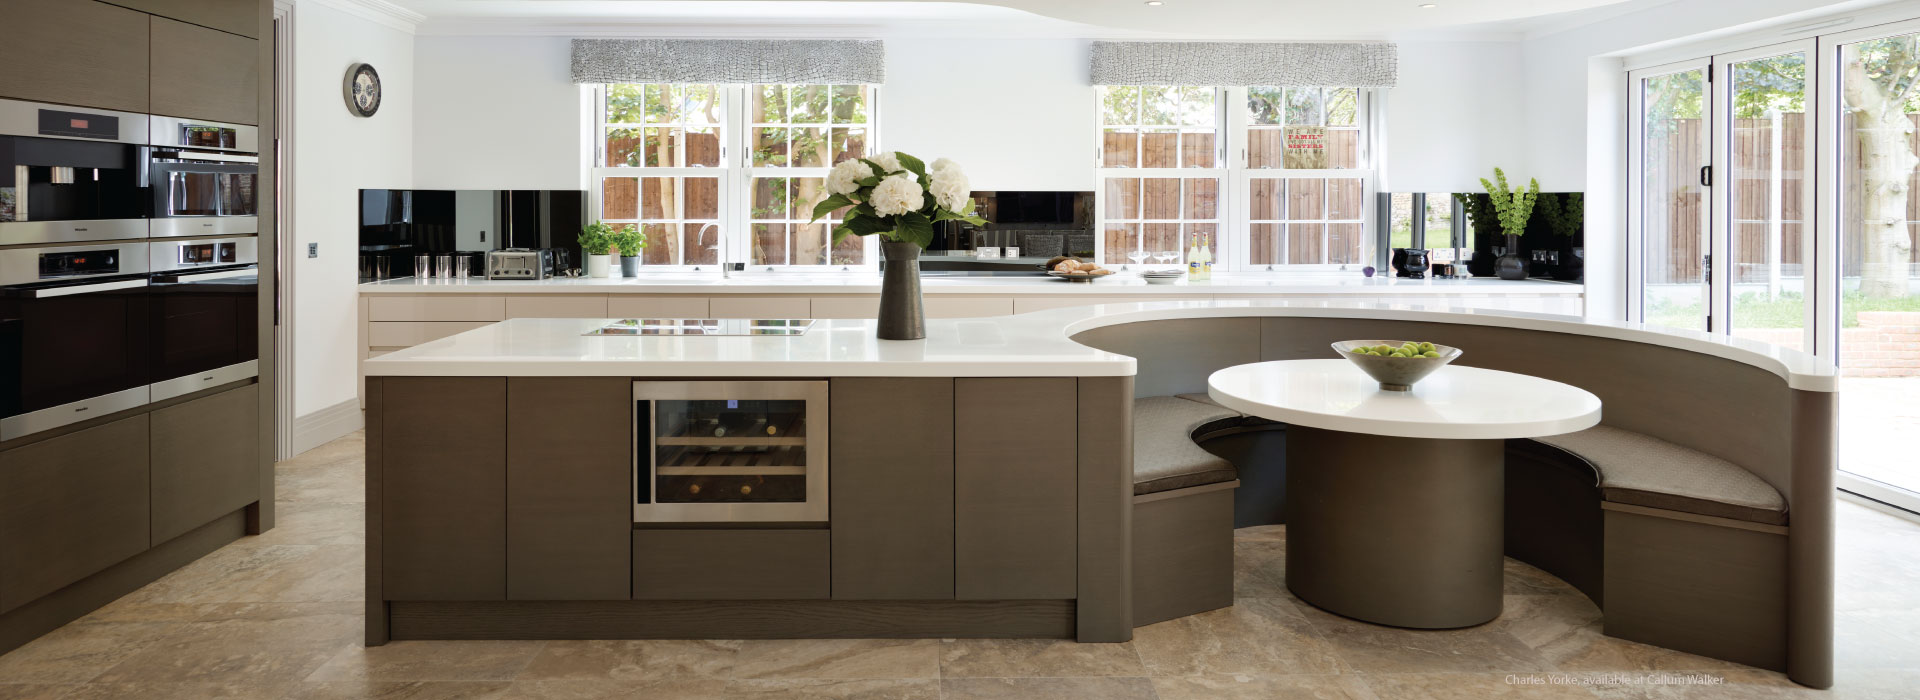 Charles Yorke Kitchen, Available Callum Walker | Interior Design Scotland Part 3